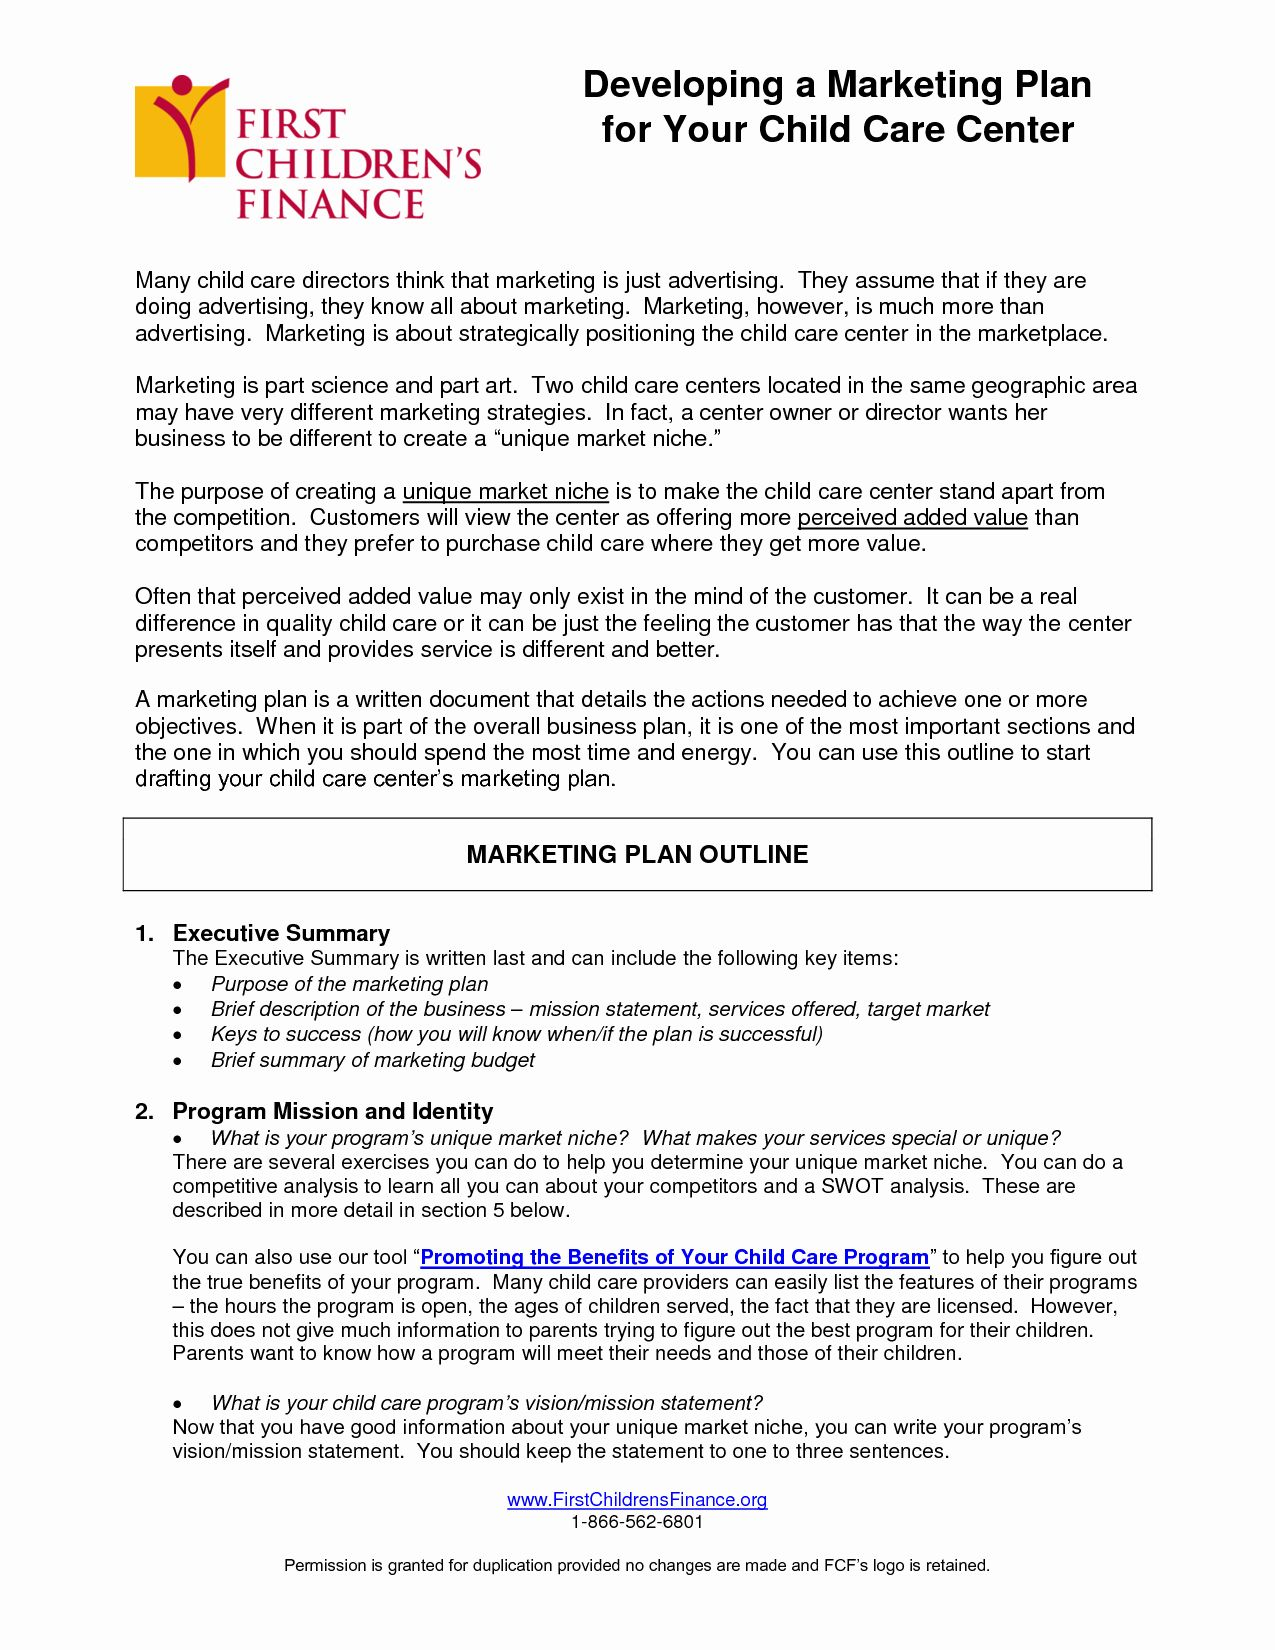 Daycare Business Plan Template Free Download Inspirational Writing